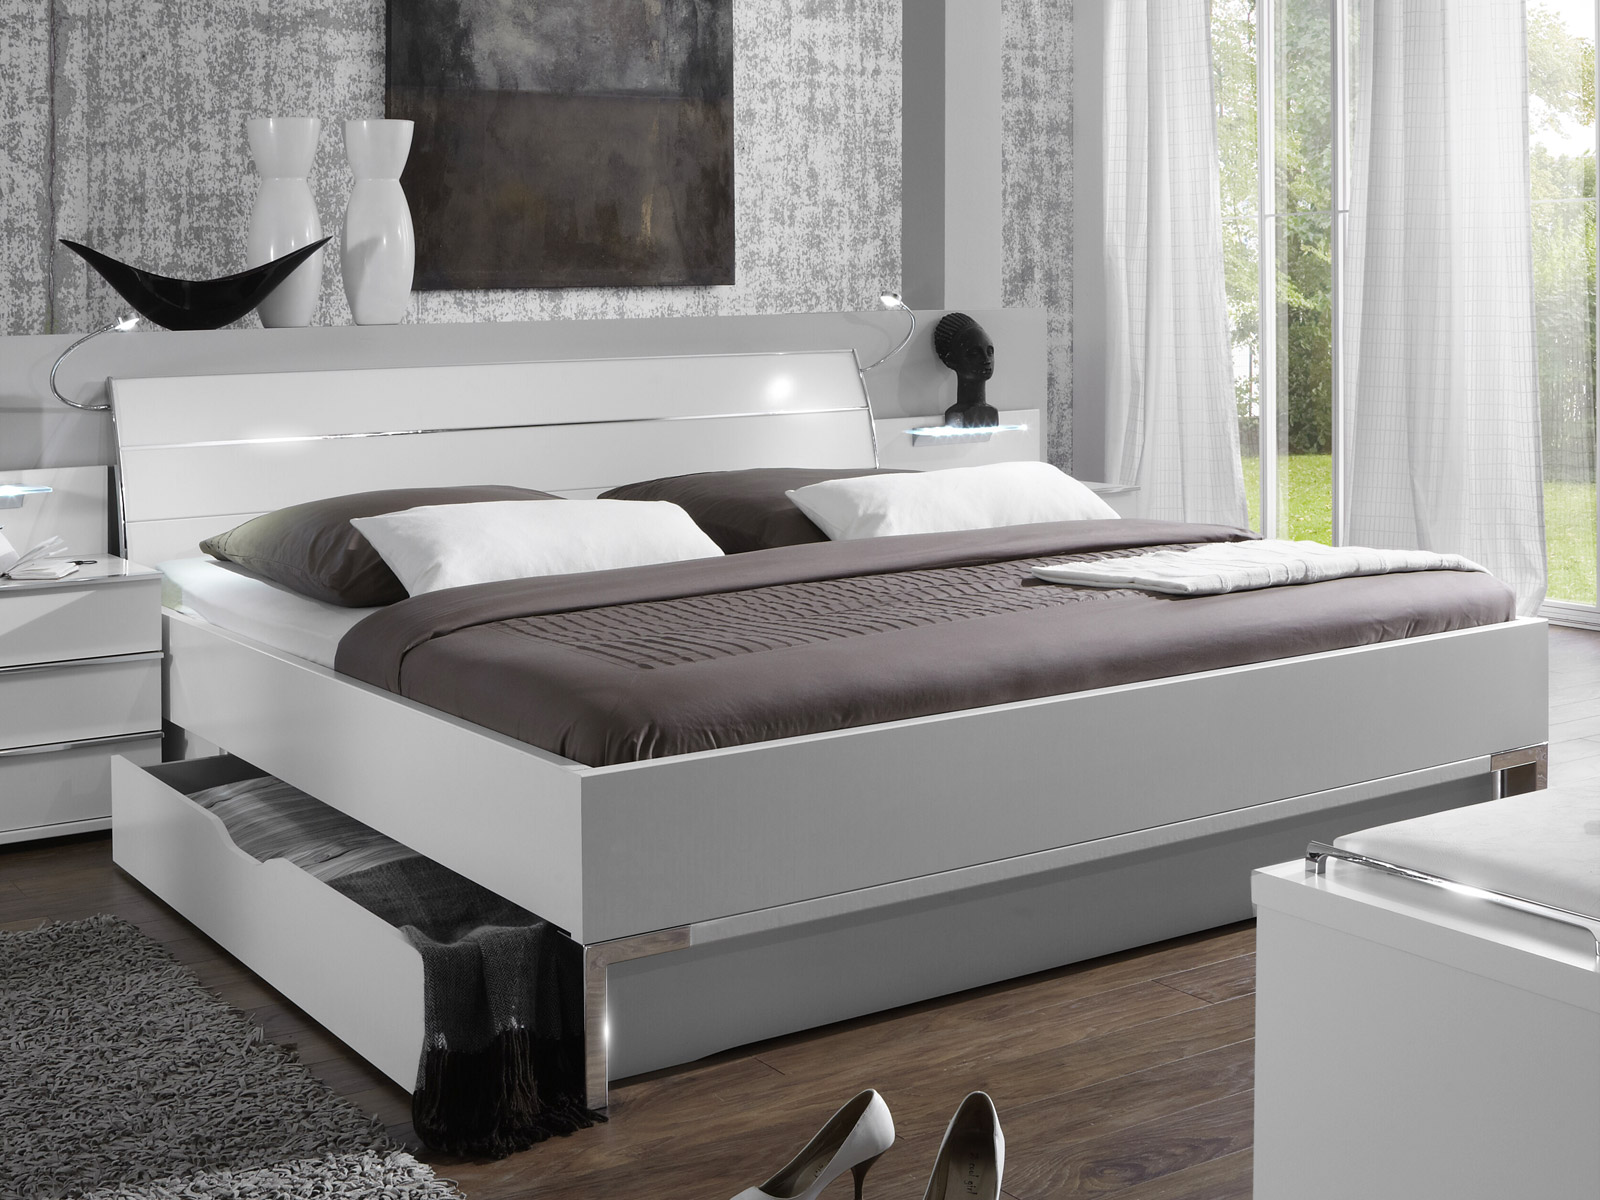 doppelbett m bel einebinsenweisheit. Black Bedroom Furniture Sets. Home Design Ideas